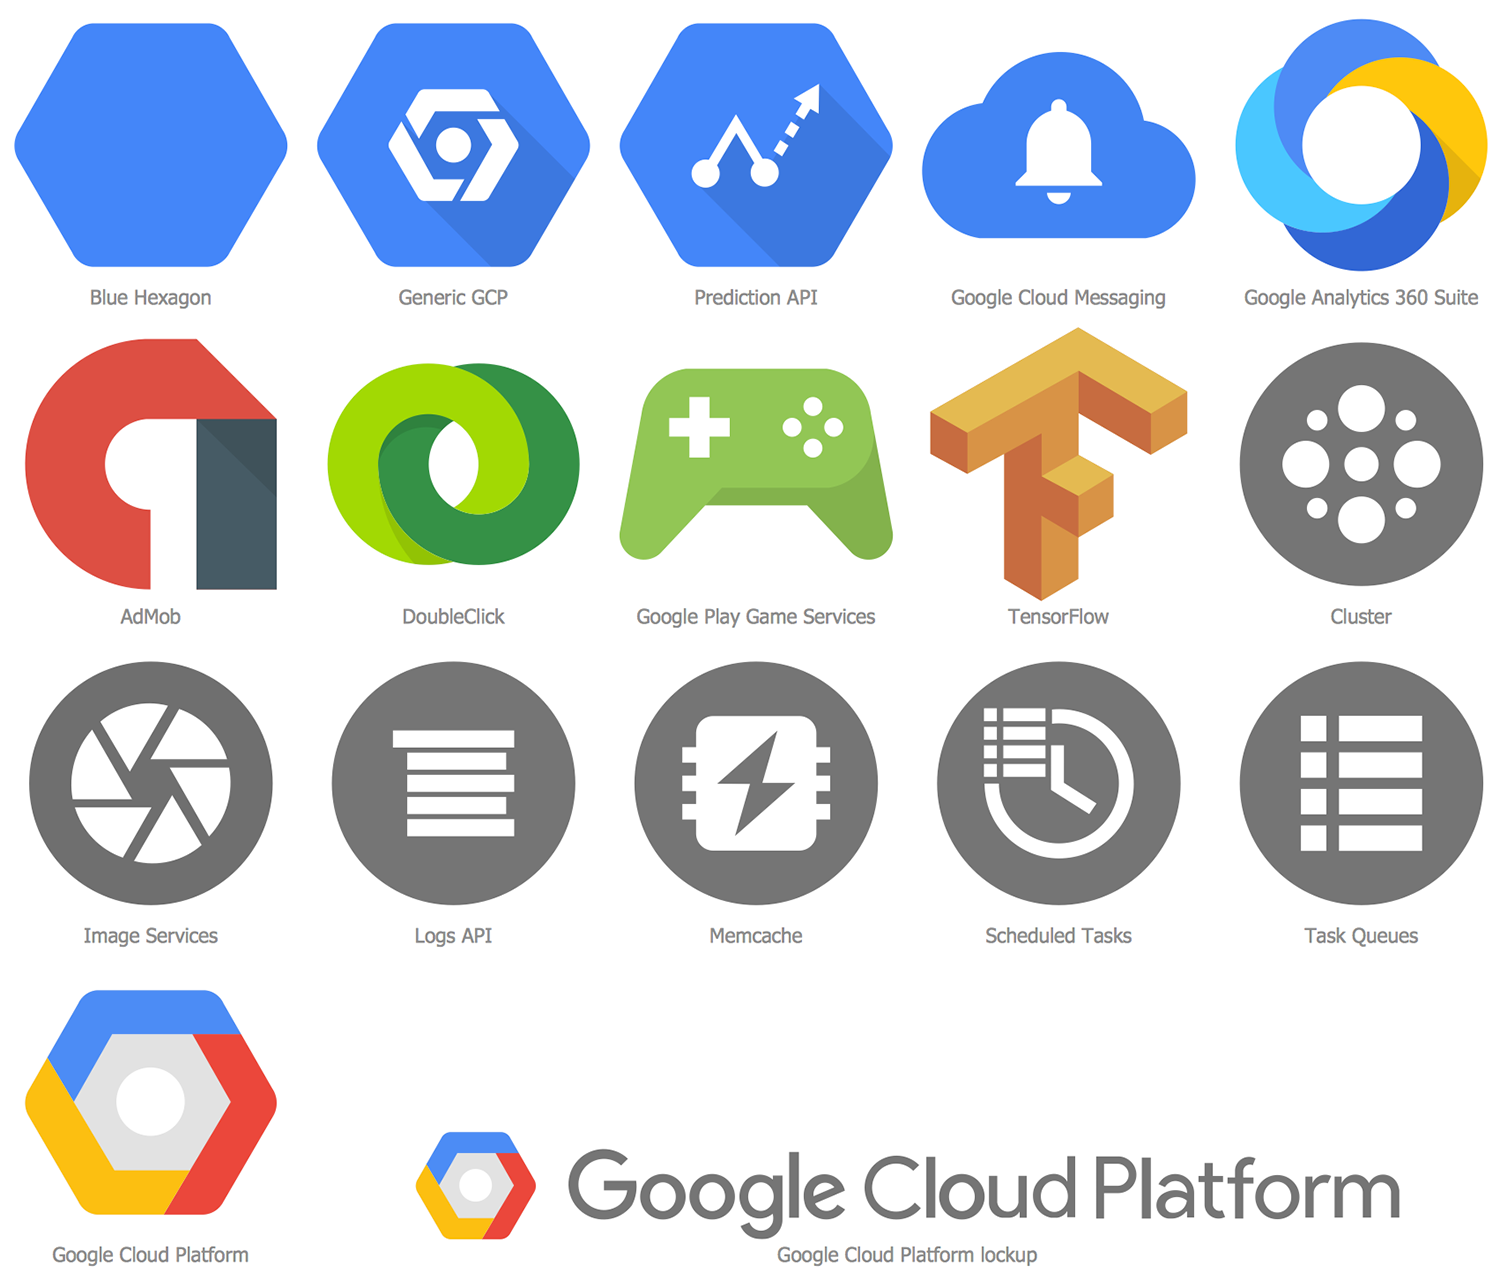 Computer Networks Google Cloud Platform All These Tools Allow You Effectively Design Google Cloud Platform Gcp Architec Cloud Platform Clouds Solutions